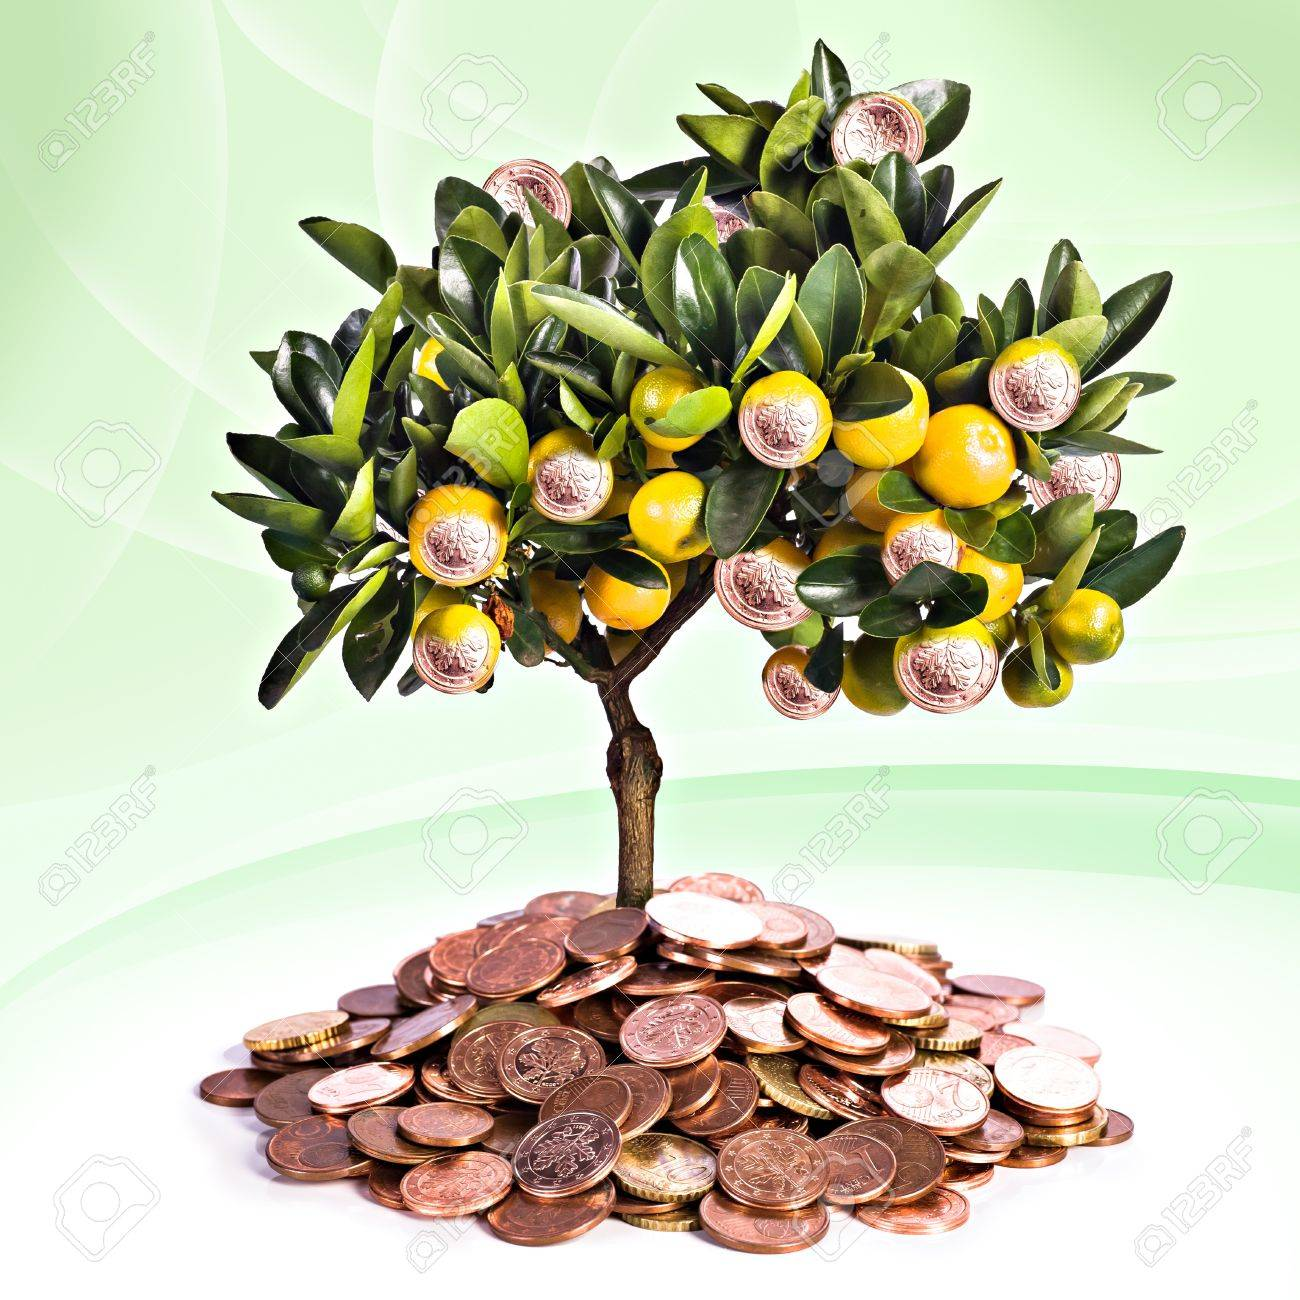 a symbolic picture for financial success and money savings Stock Photo - 12614439